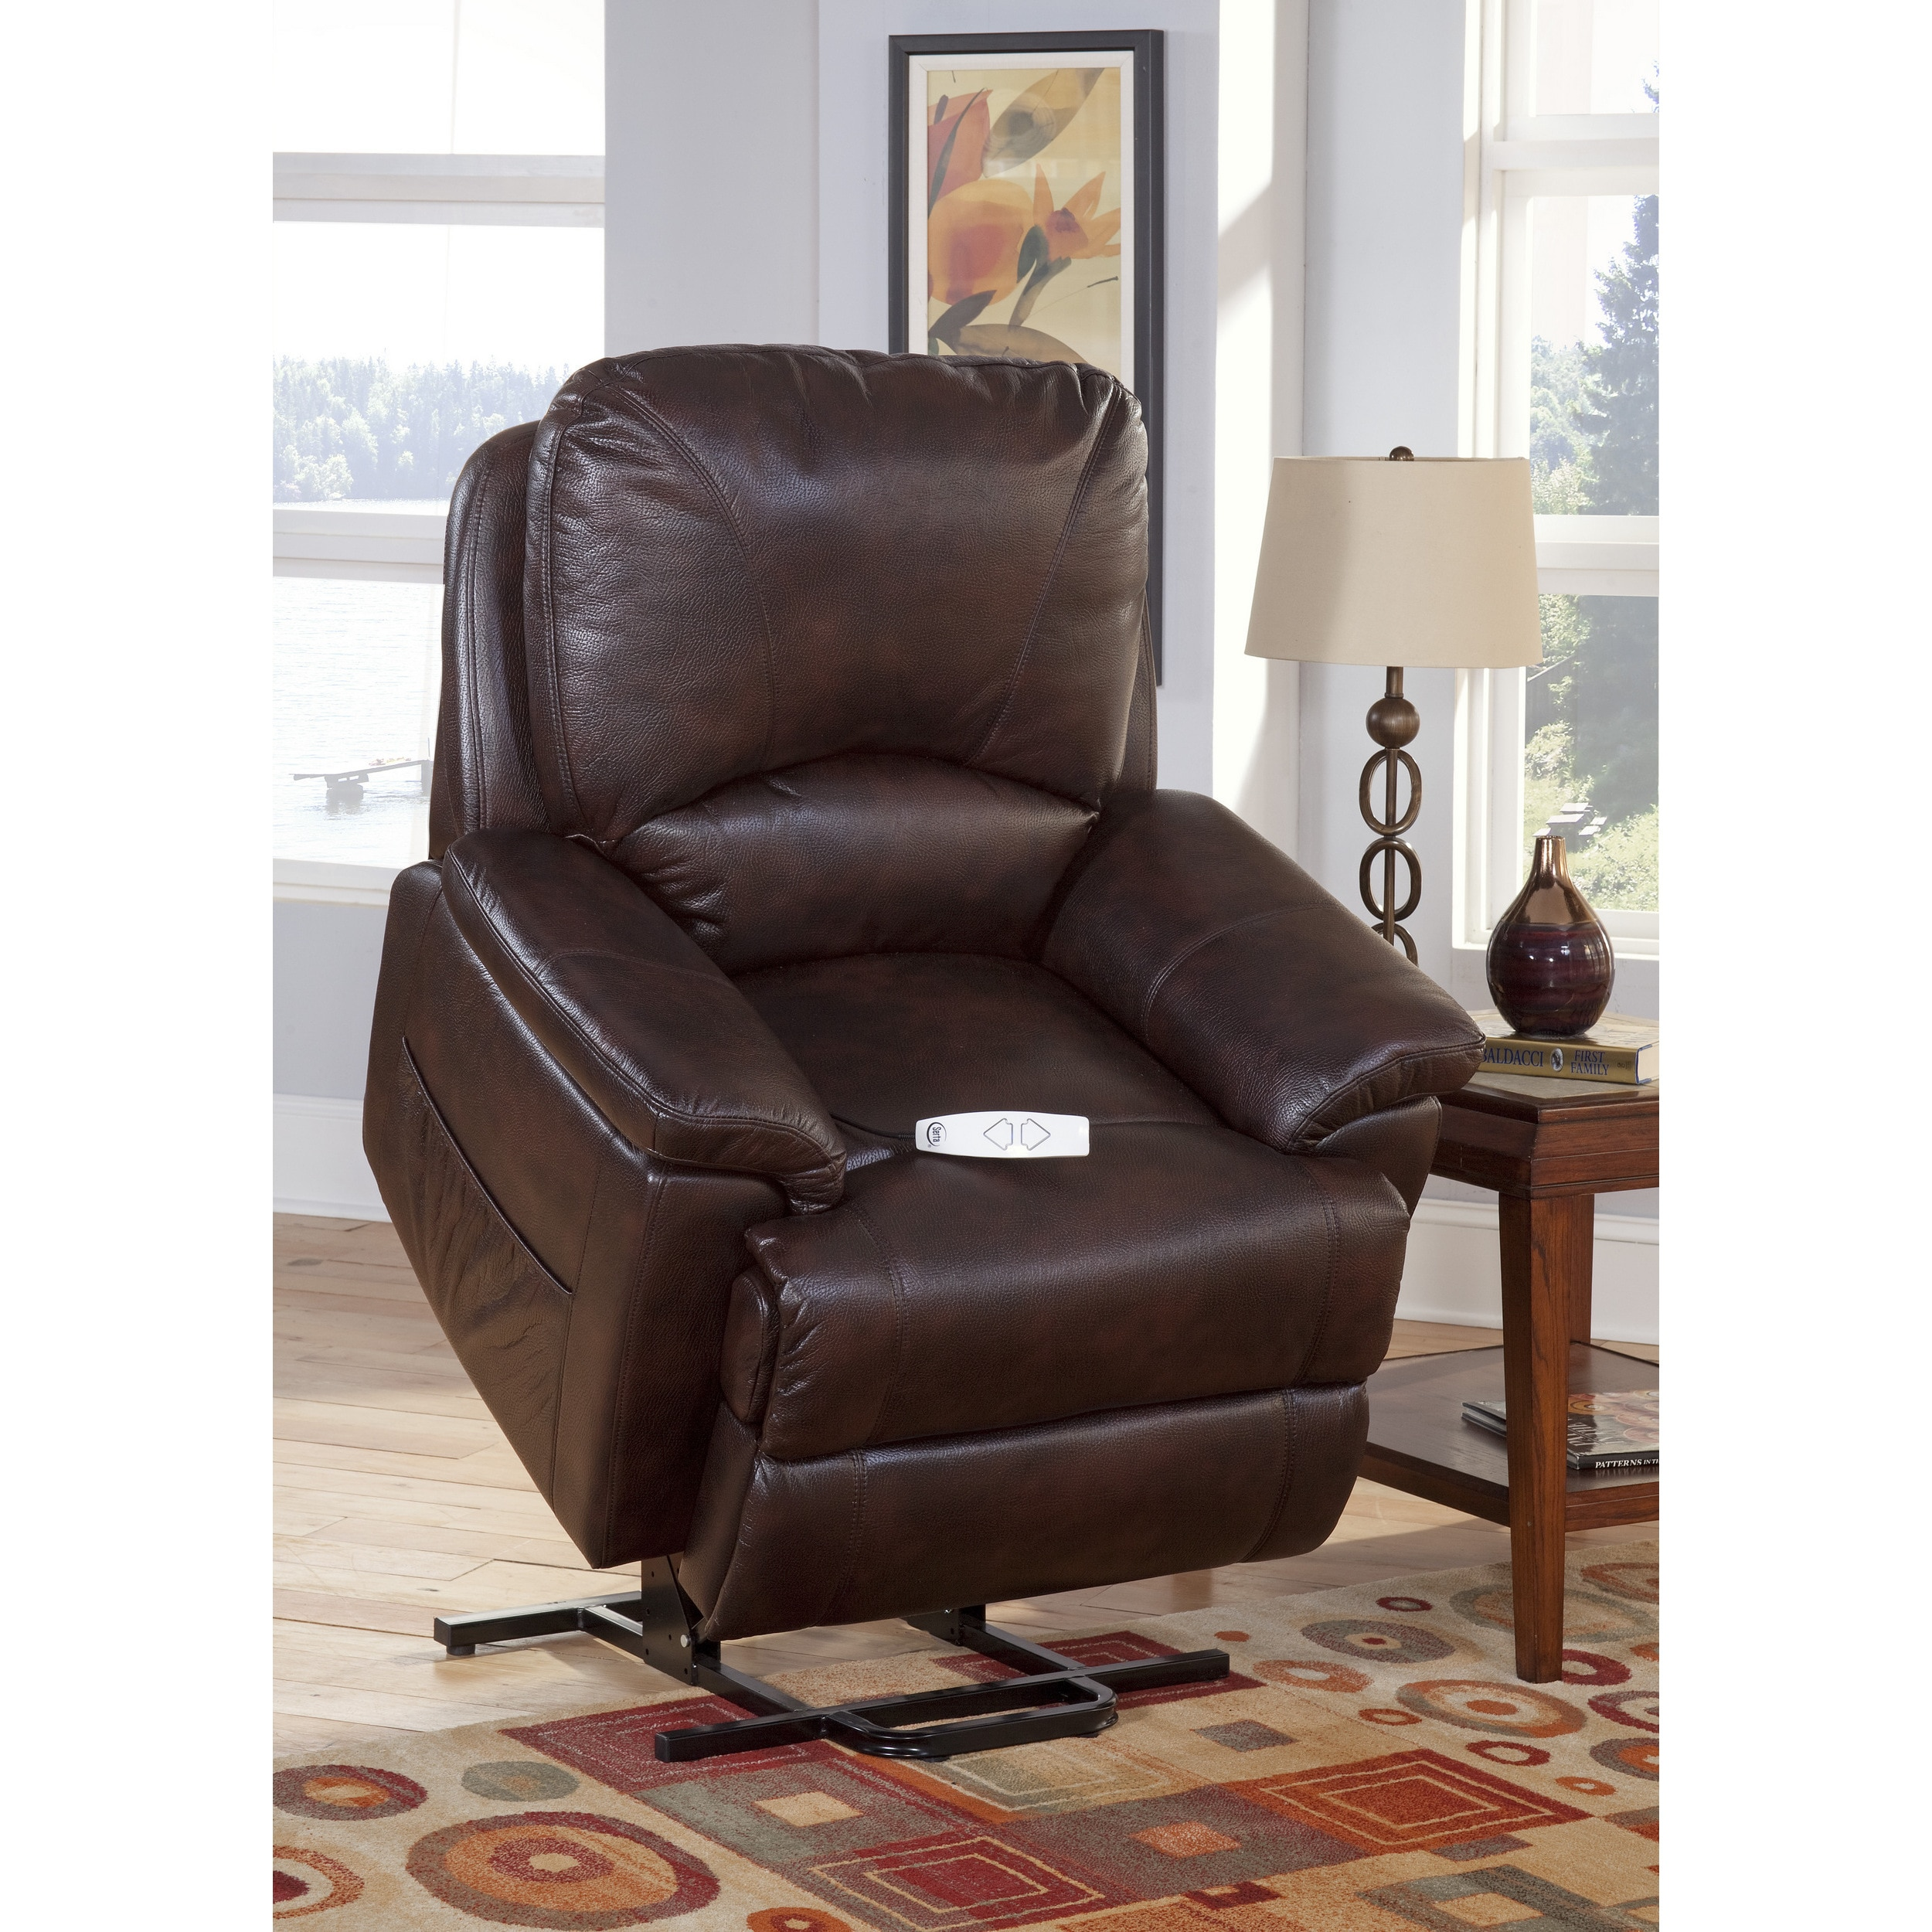 Serta fort Lift Mystic Reclining Chair Free Shipping Today